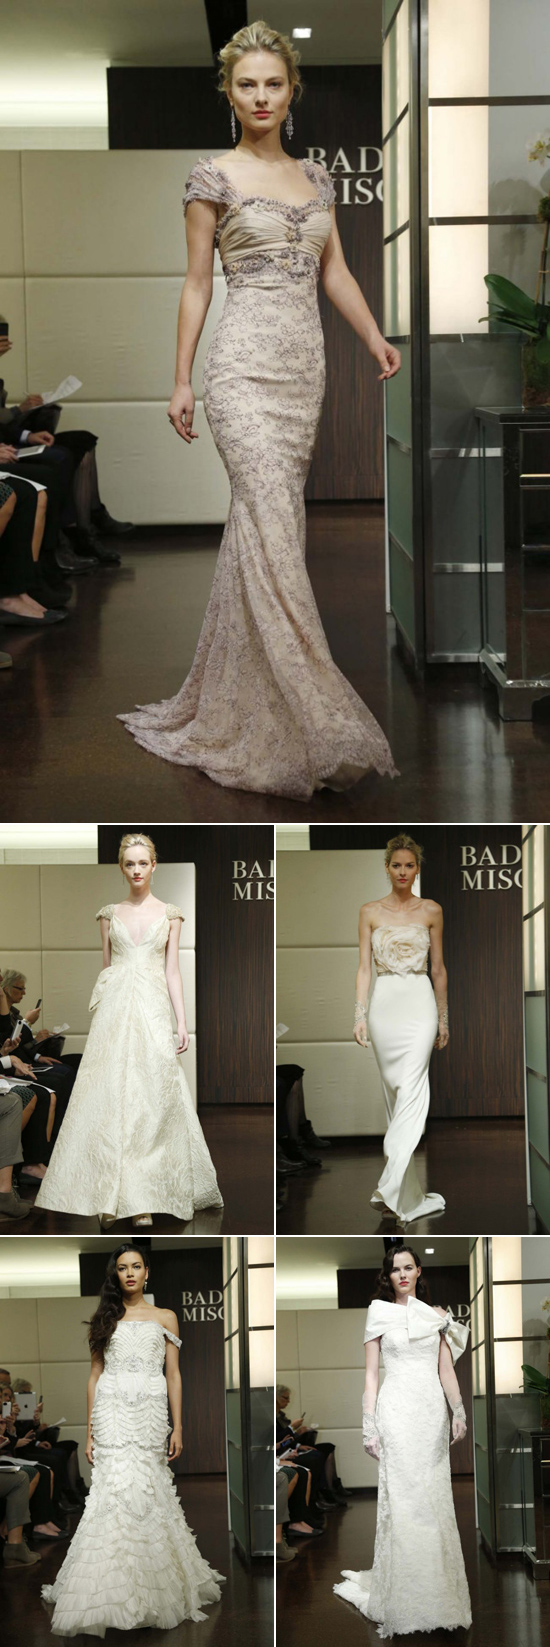 Badgley Mischka fall 2013